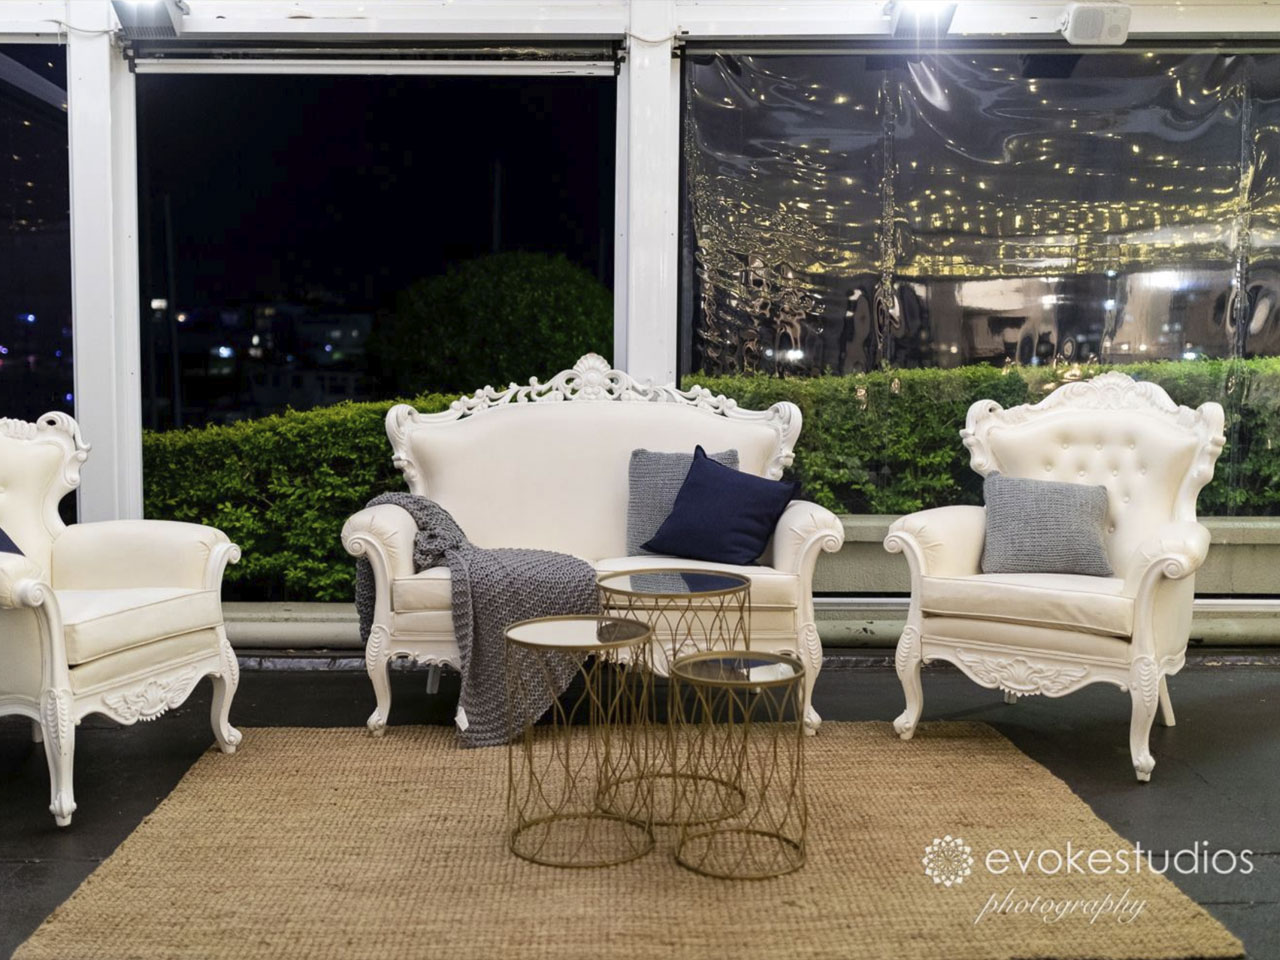 White lounge chairs at window at night time inside function room